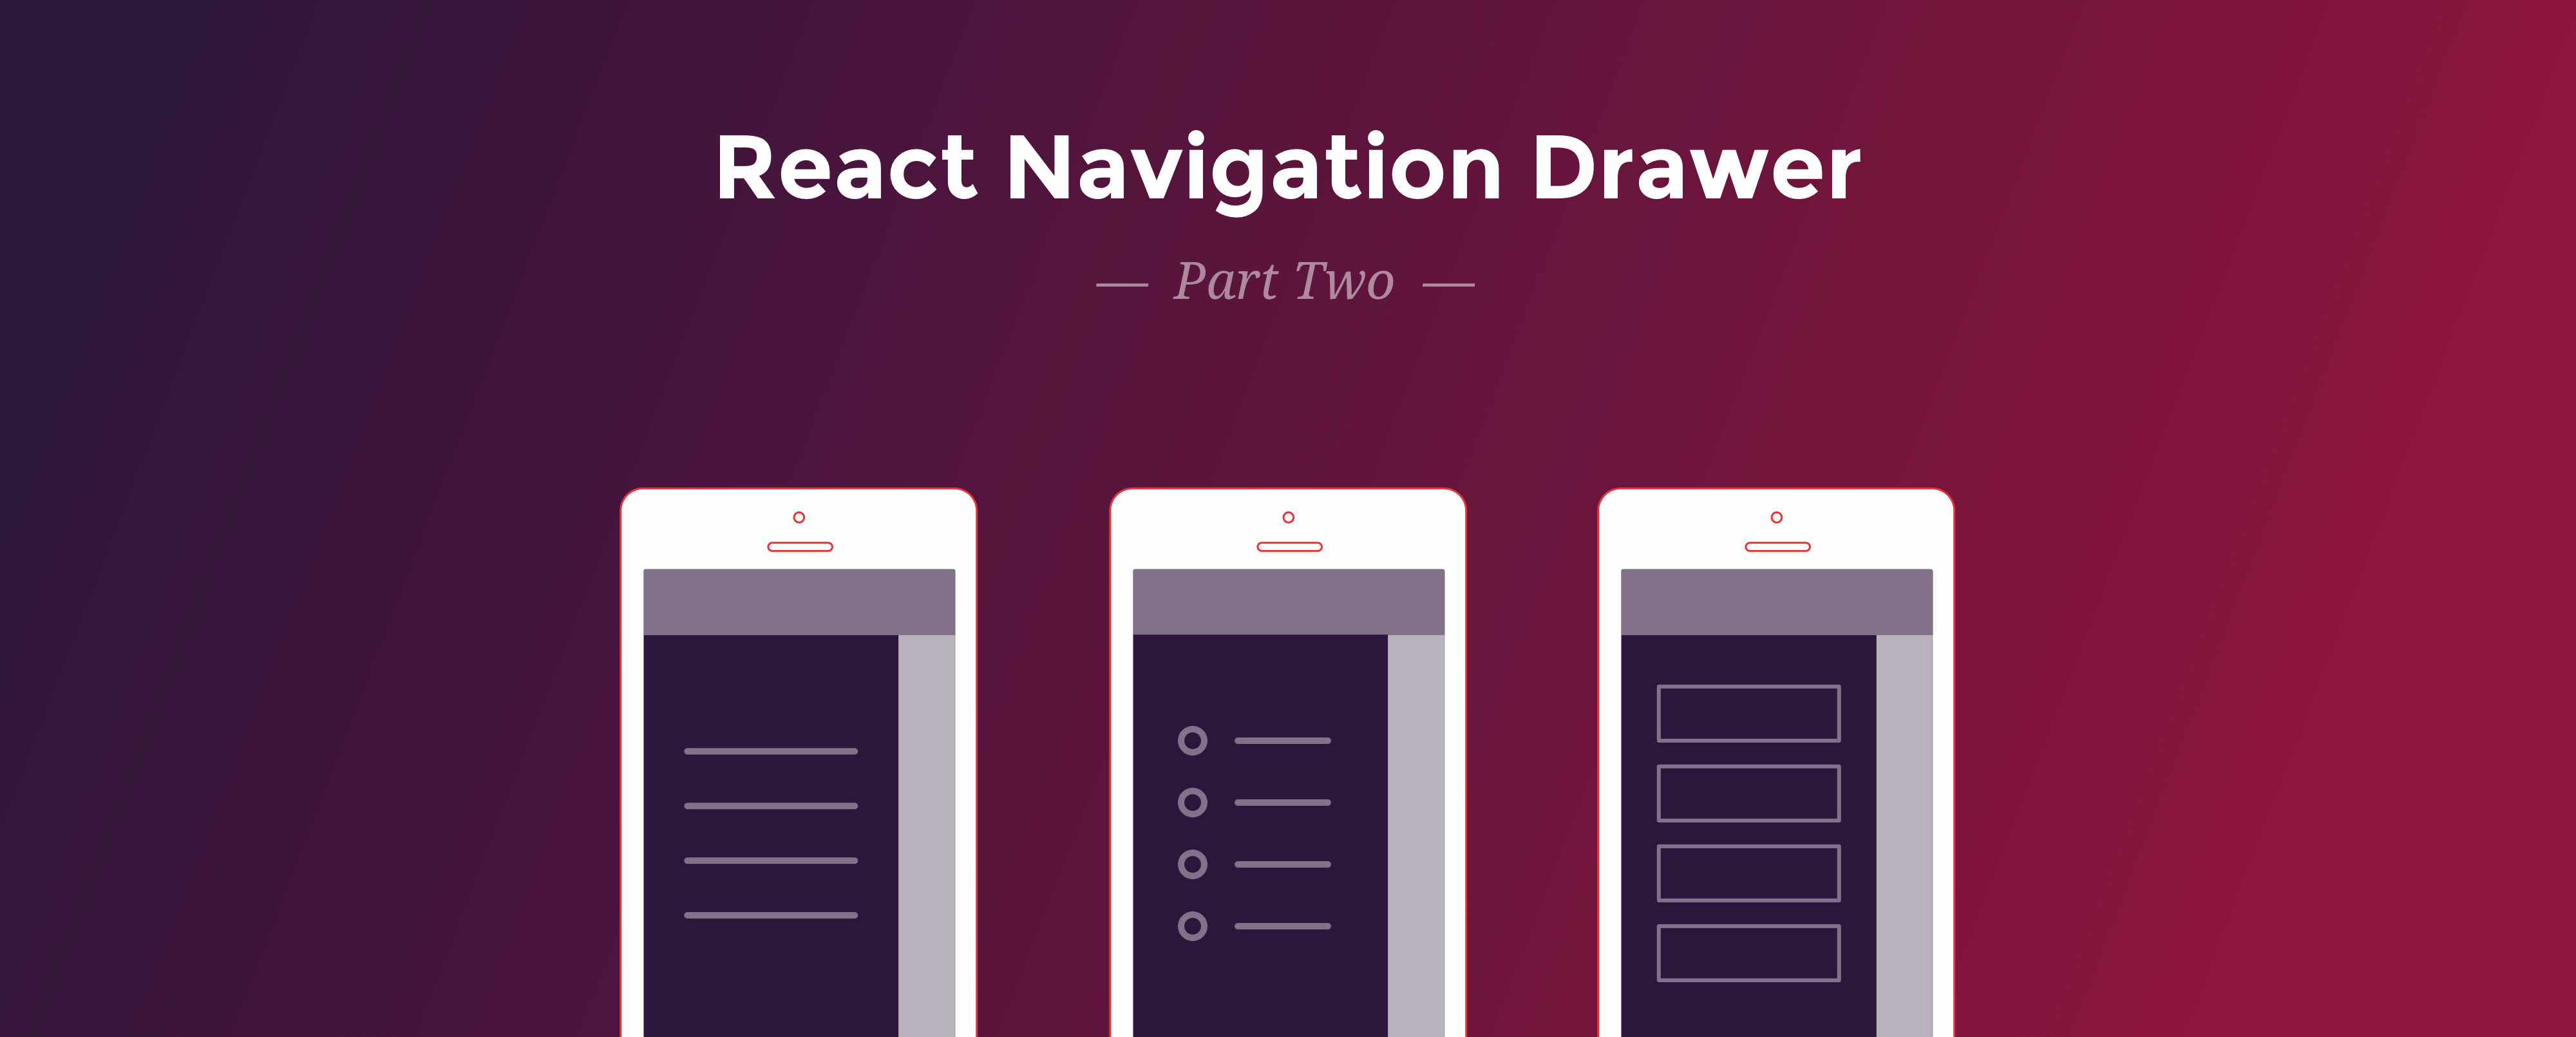 React Navigation Drawer Tutorial — Part 2 - Red Shift